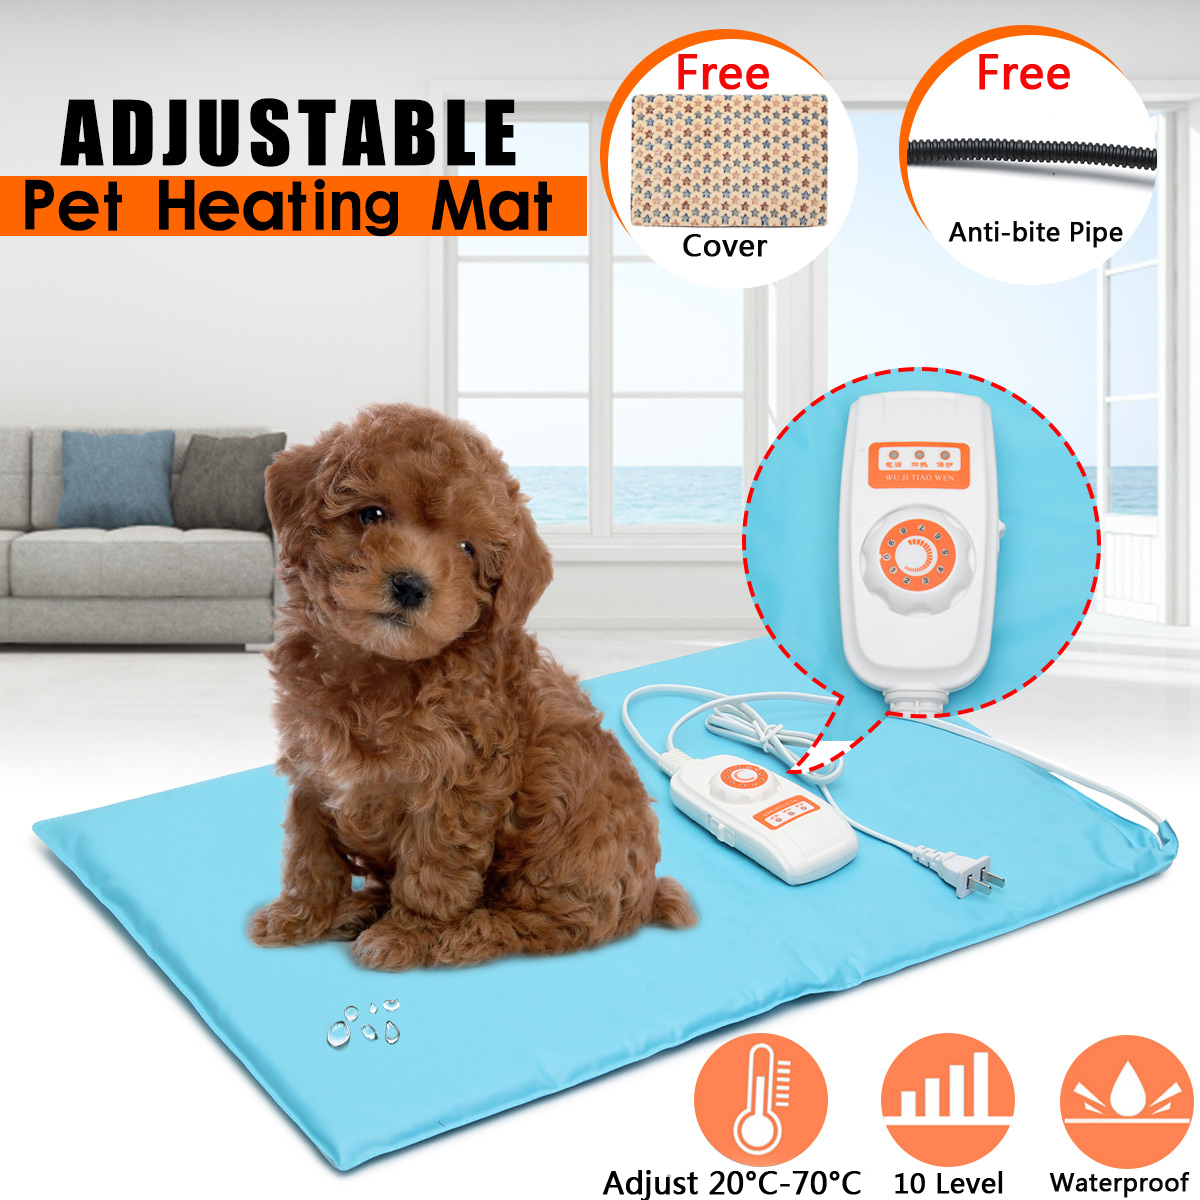 Warmtoo 10 Level 40x60cm Portable Electric Heater Waterproof Adjustable Heated Mat Pet Heating Pad Winter Heated Gloves Carpet 5v usb electric clothes heater sheet adjustable temperature winter heated gloves for cloth pet heating pad waist warmer tablet